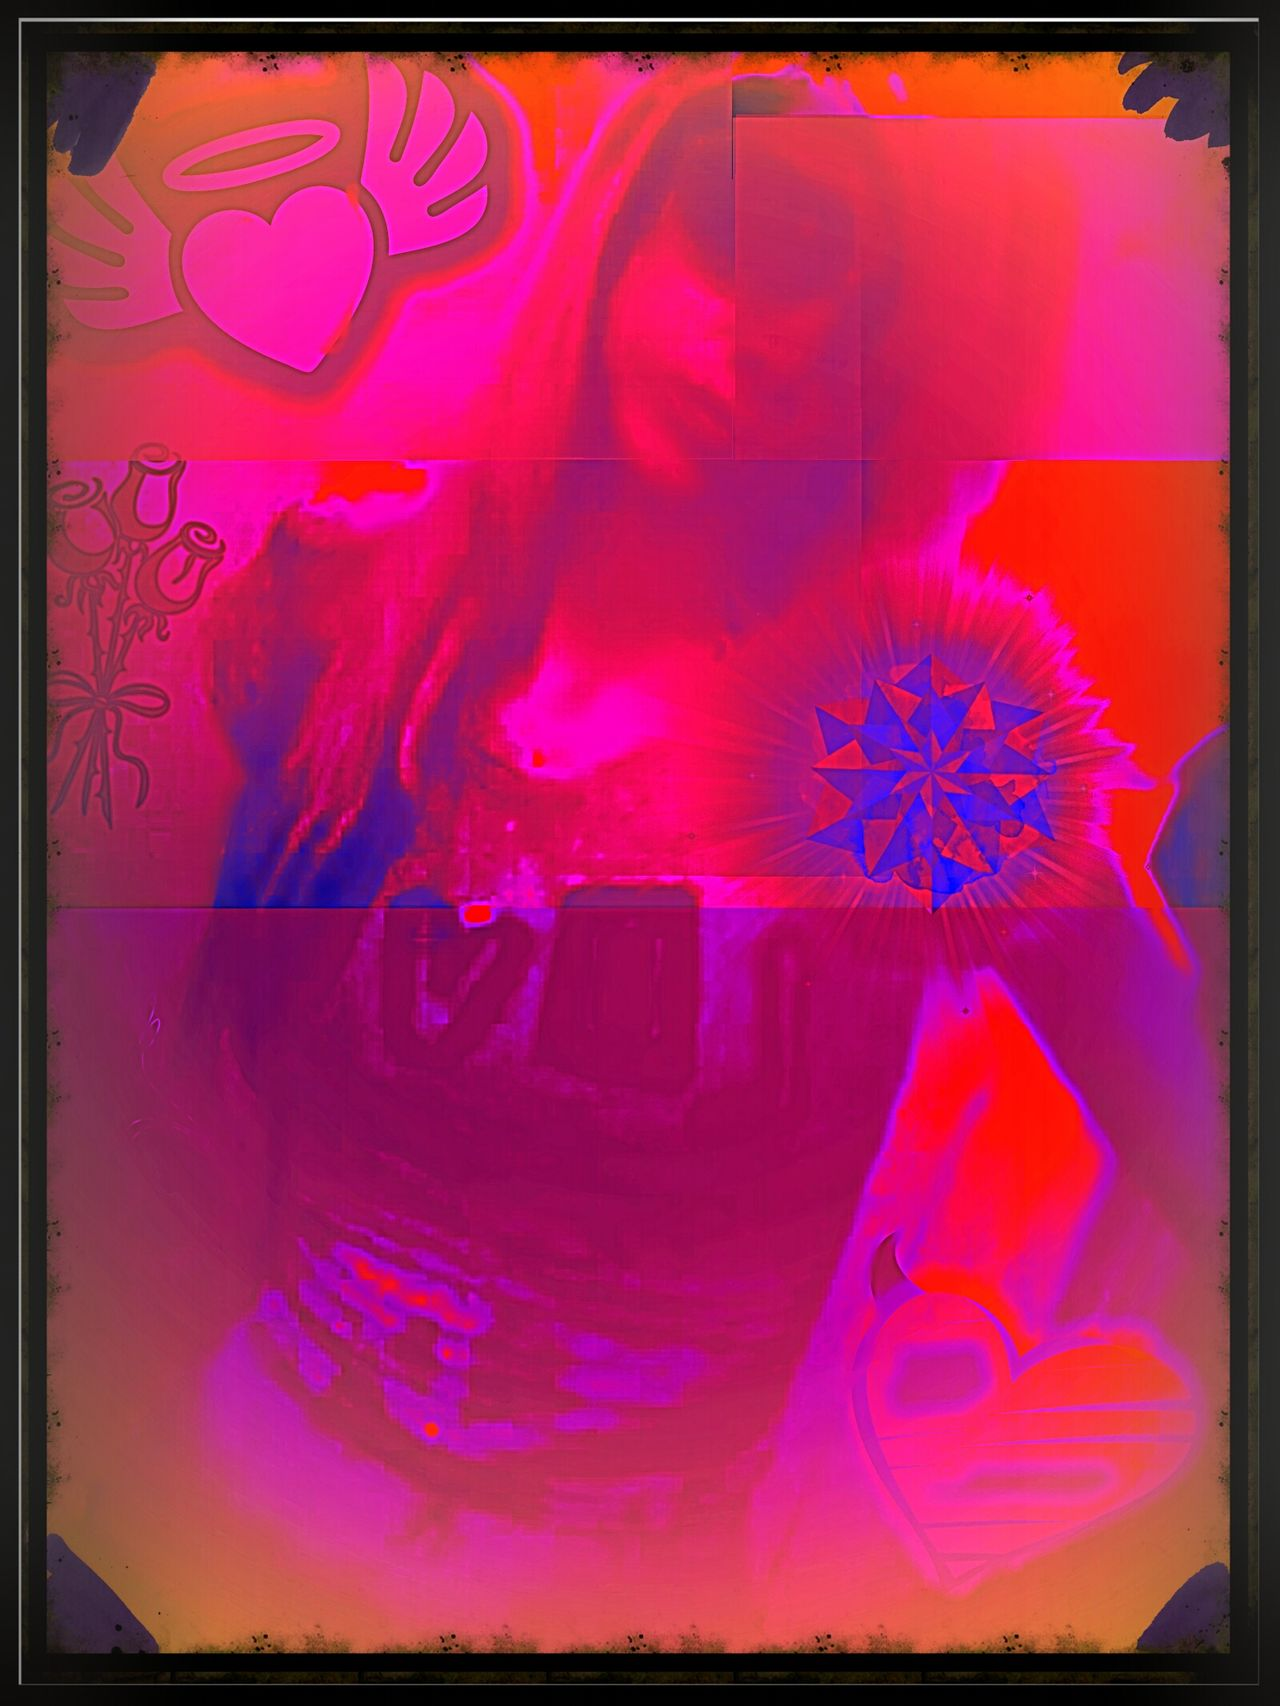 Auto Post Production Filter Bold Creativity Filters Full Frame Jessica Tuggle Multi Colored Mydesign Neon No People Painted Image Pink Pink Color Popart Red Red Color SexyAsFuck Sexygirl Stunning Transfer Print Vibrant Vibrant Color Vibrant Colors Vivid Vivid Colours